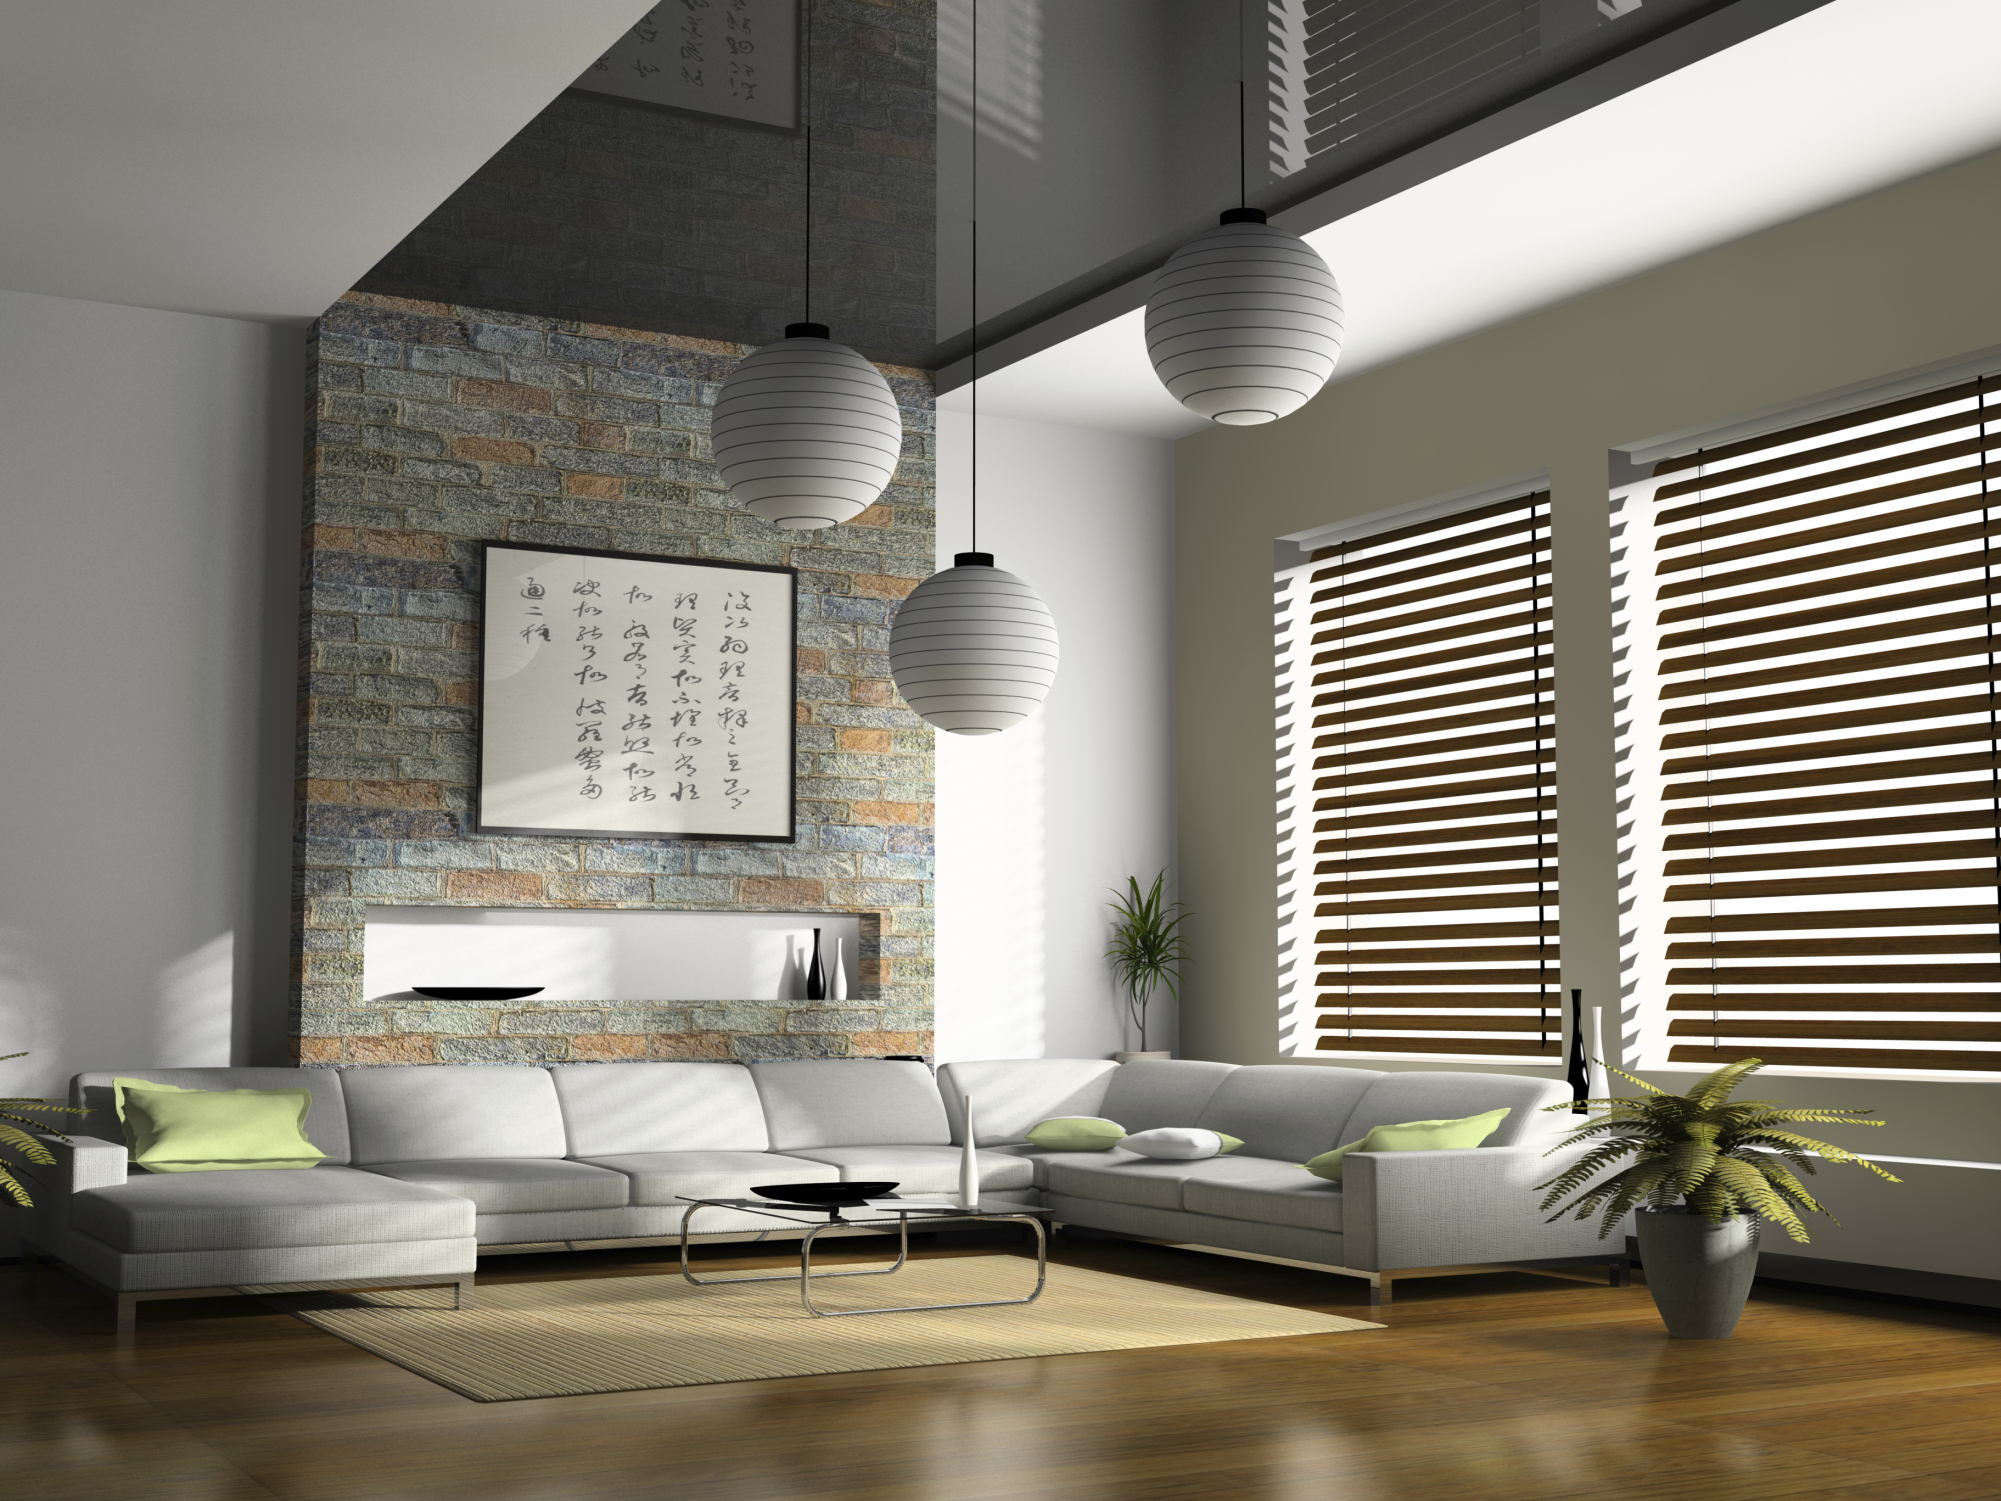 Different styles of blinds for your home